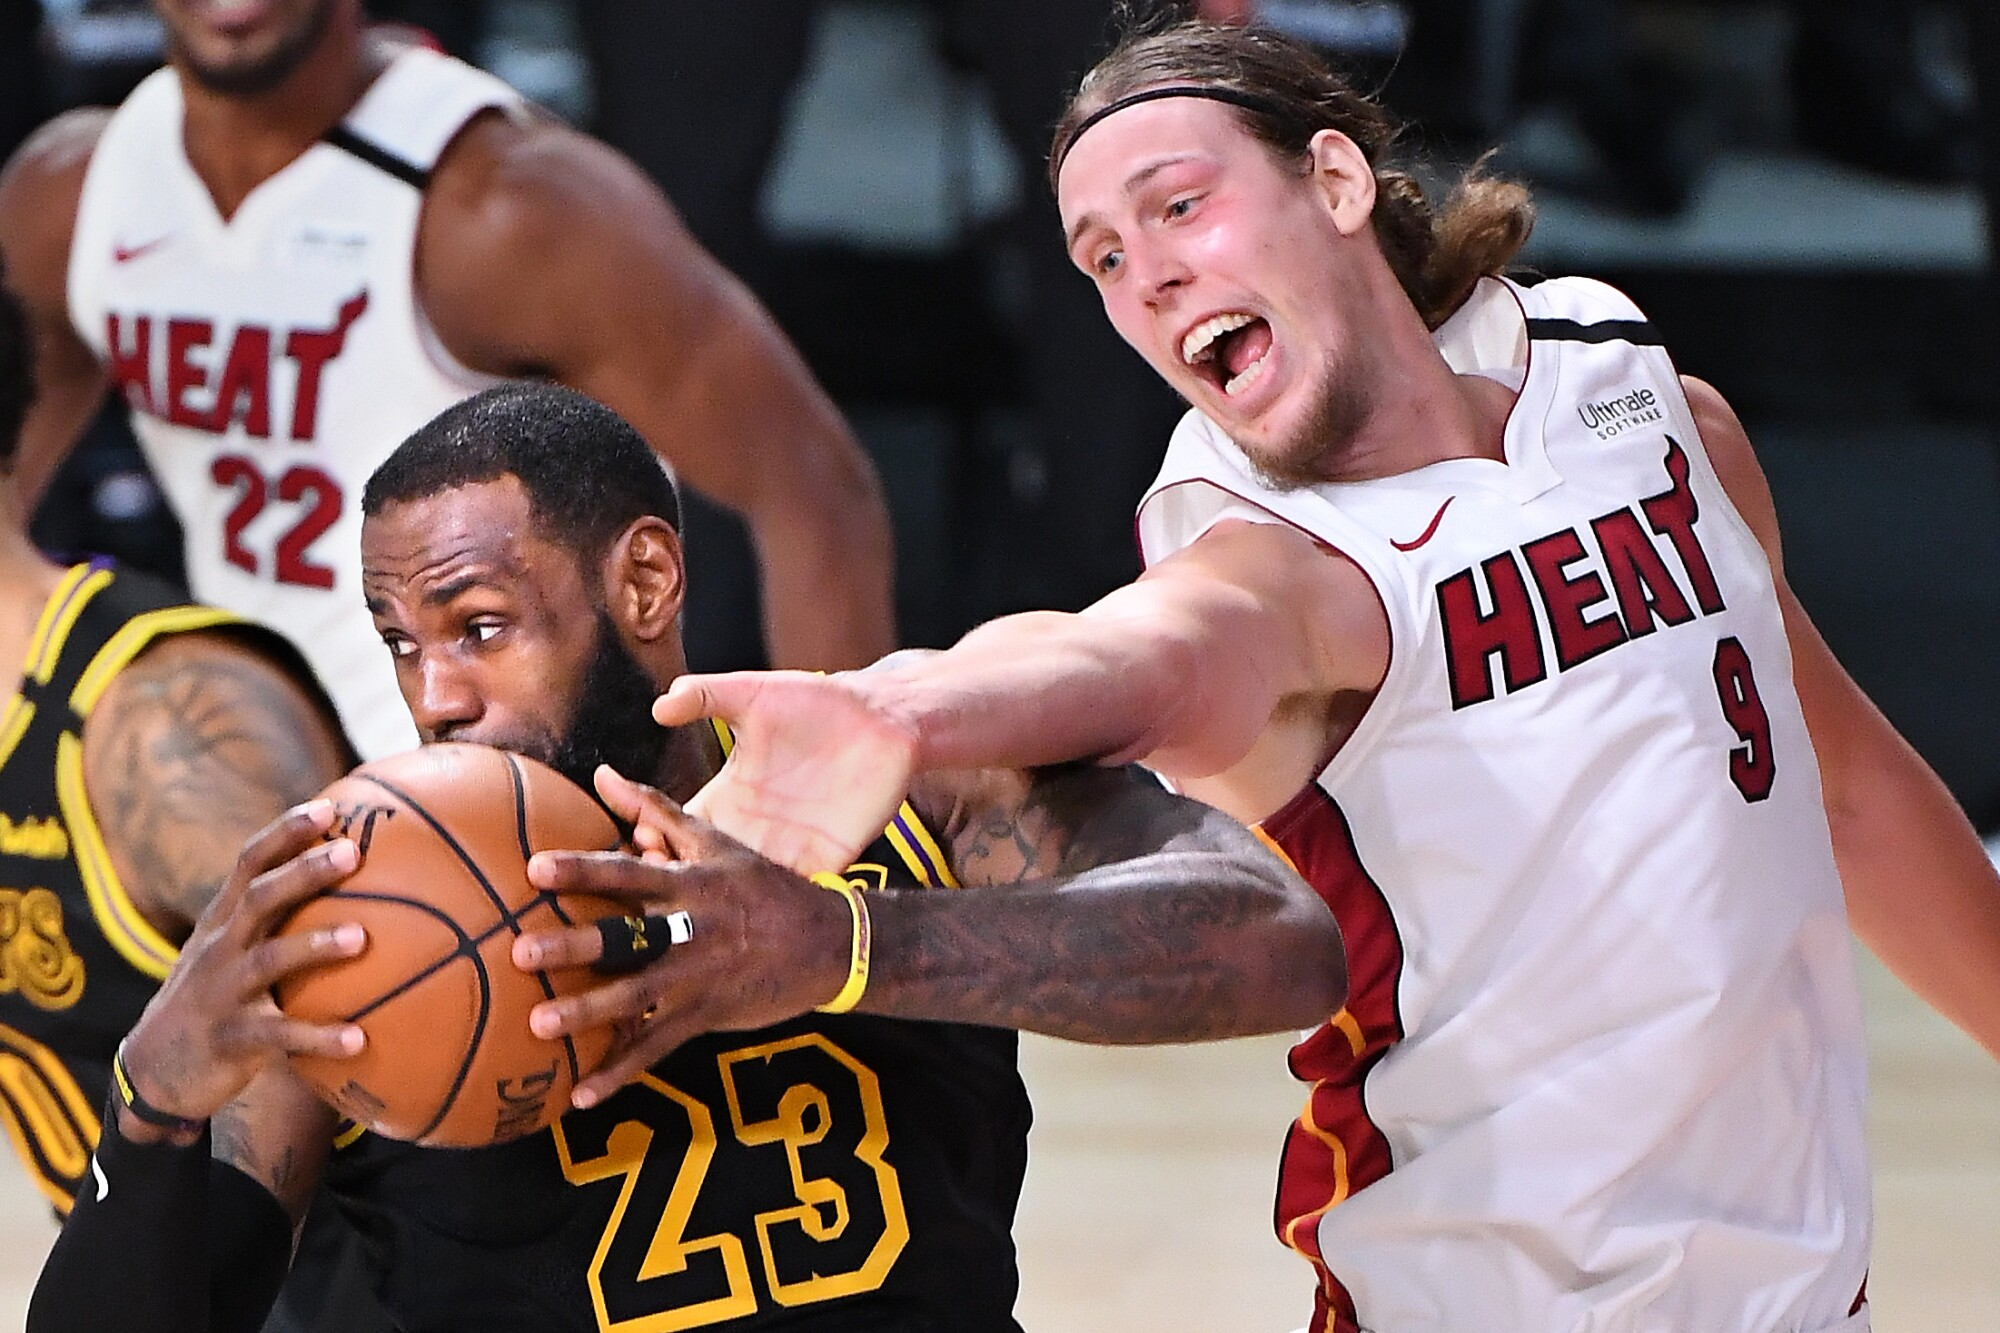 Lakers star LeBron James grabs a rebound in front of Miami's Kelly Olynyk during the second quarter of Game 2.